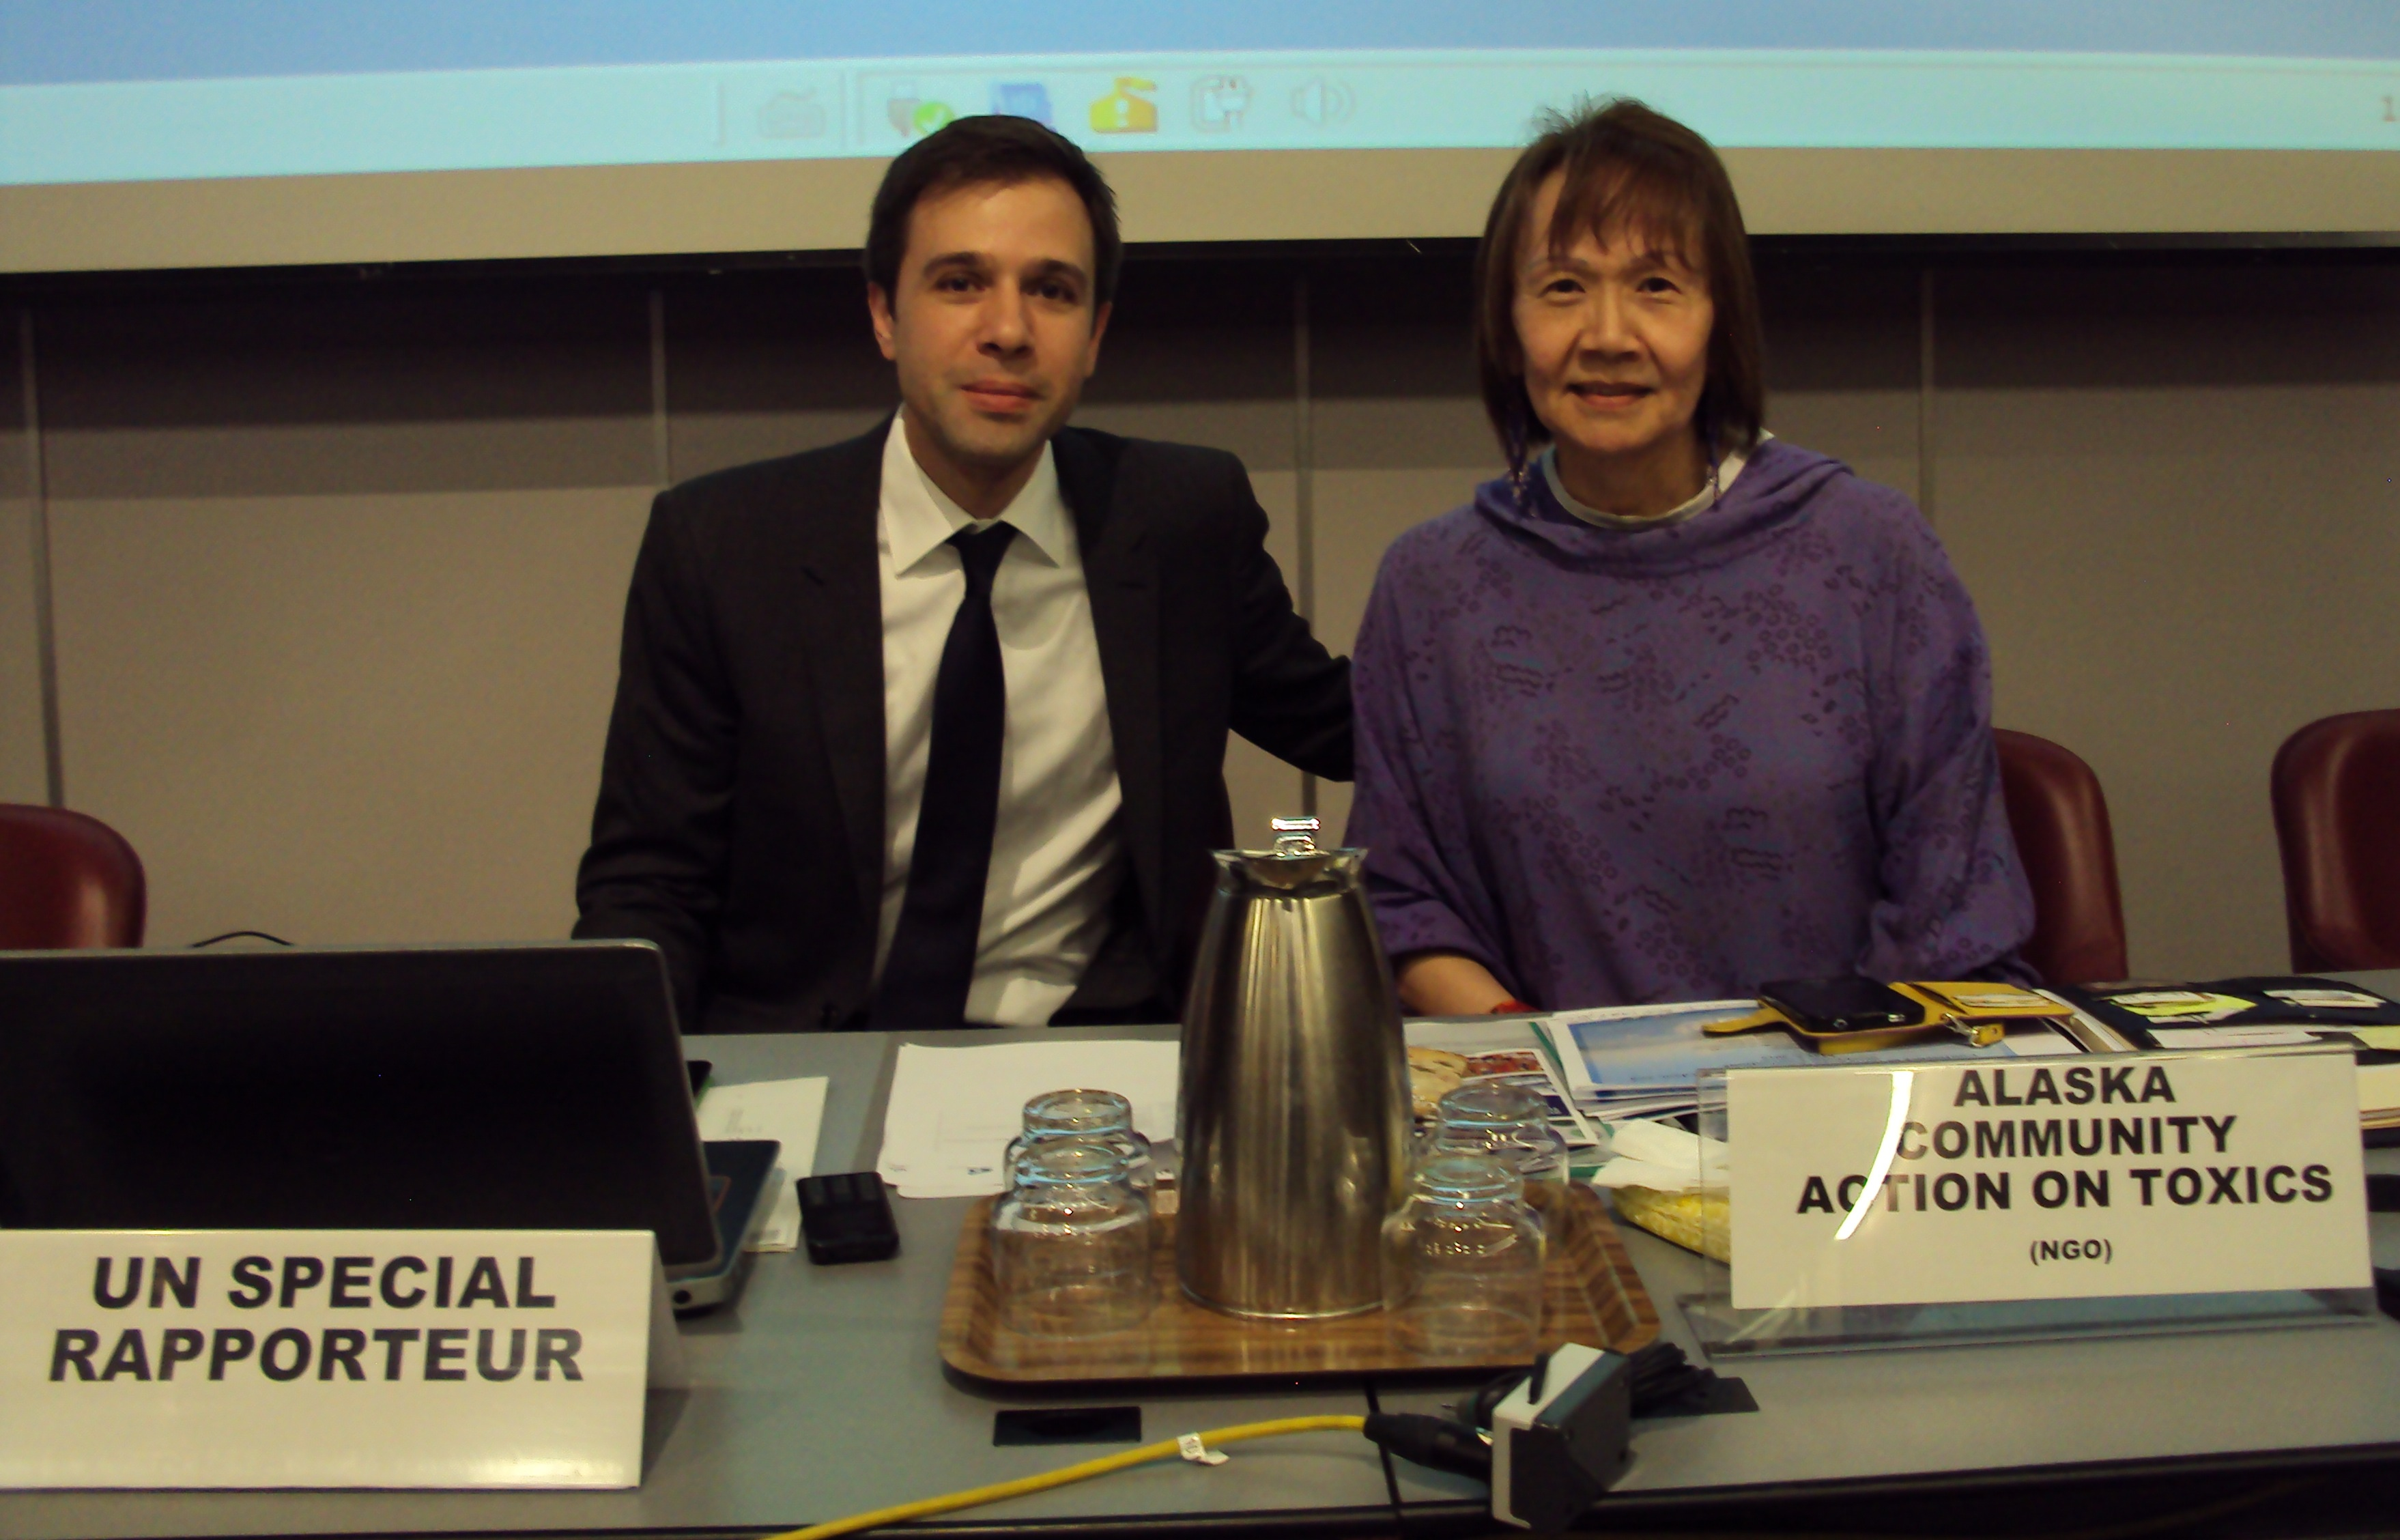 Baskut Tuncak and Vi Waghiyi at human rights side event